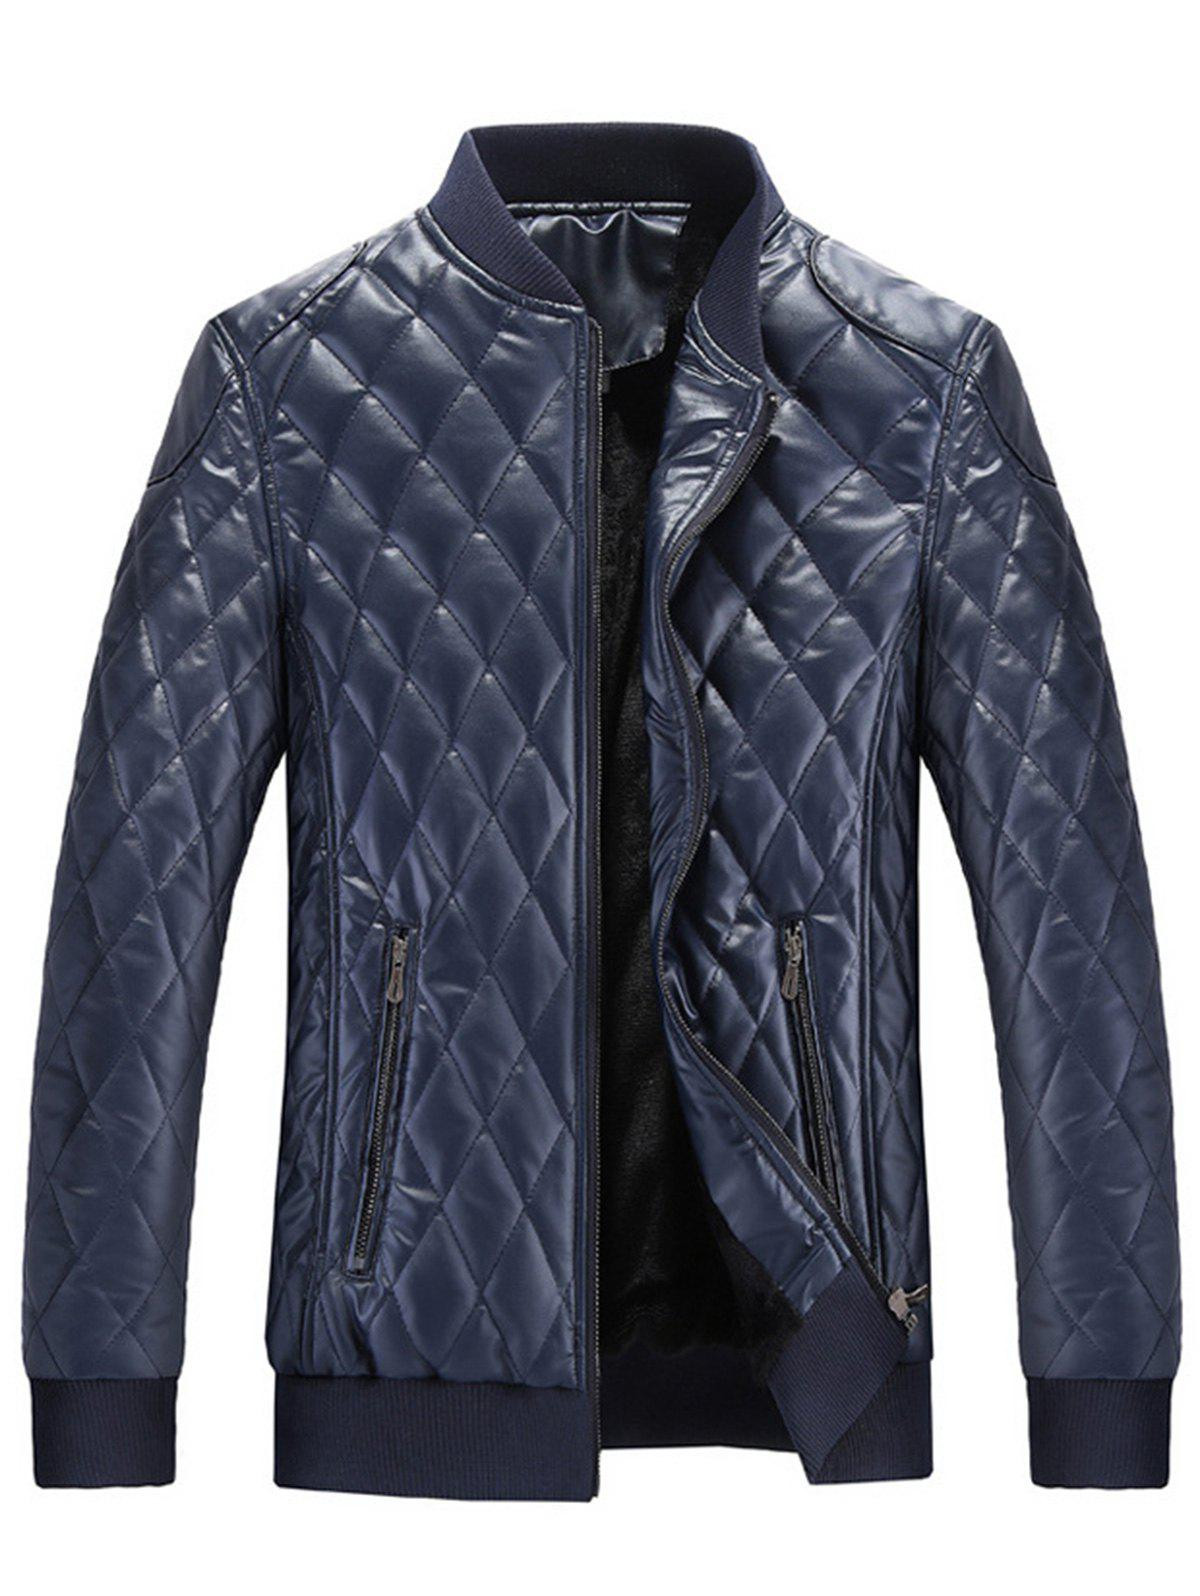 Shop Zip Up Checkered Faux Leather Jacket